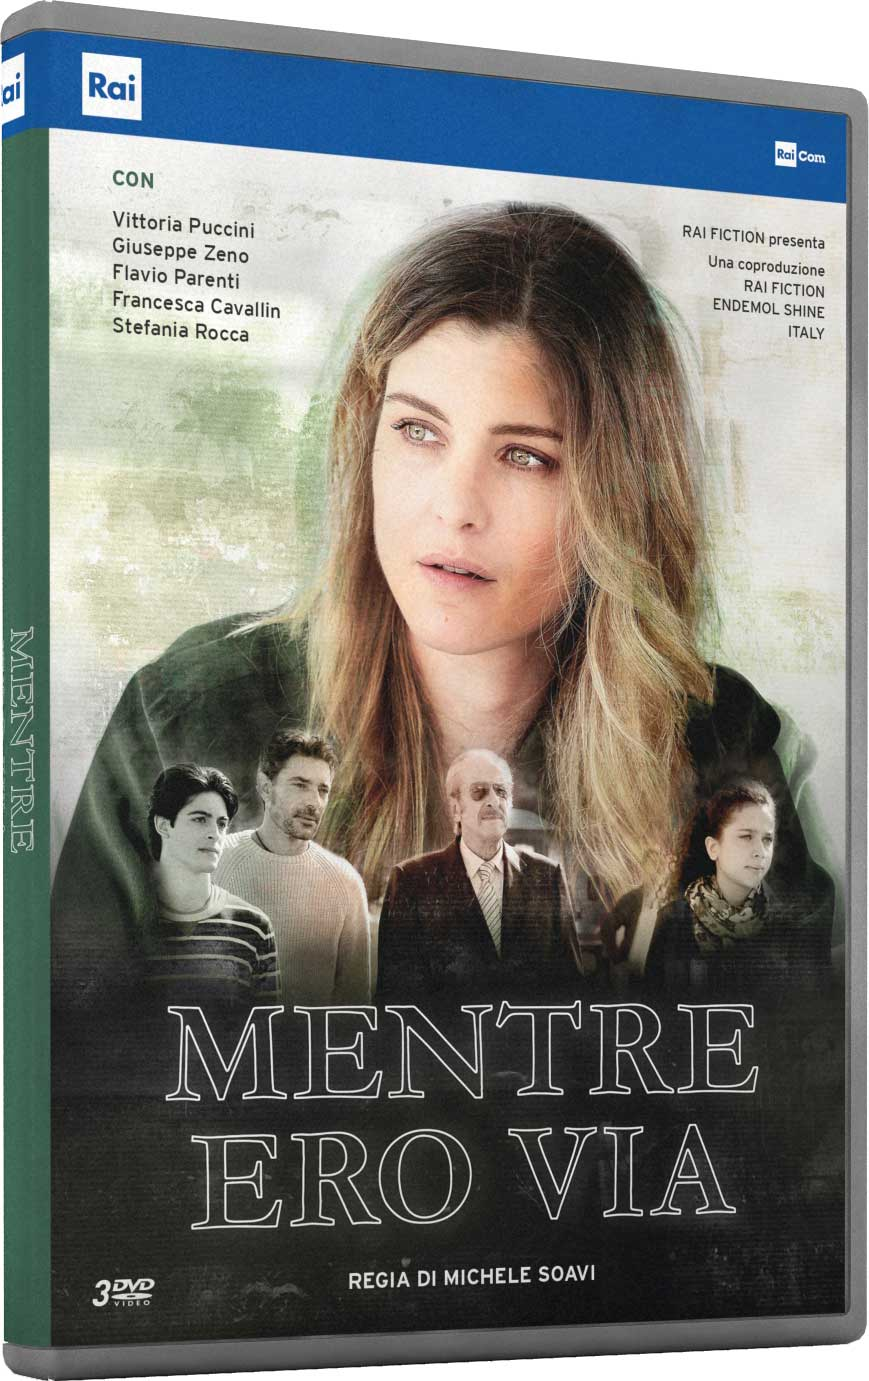 COF.MENTRE ERO VIA (3 DVD) (DVD)